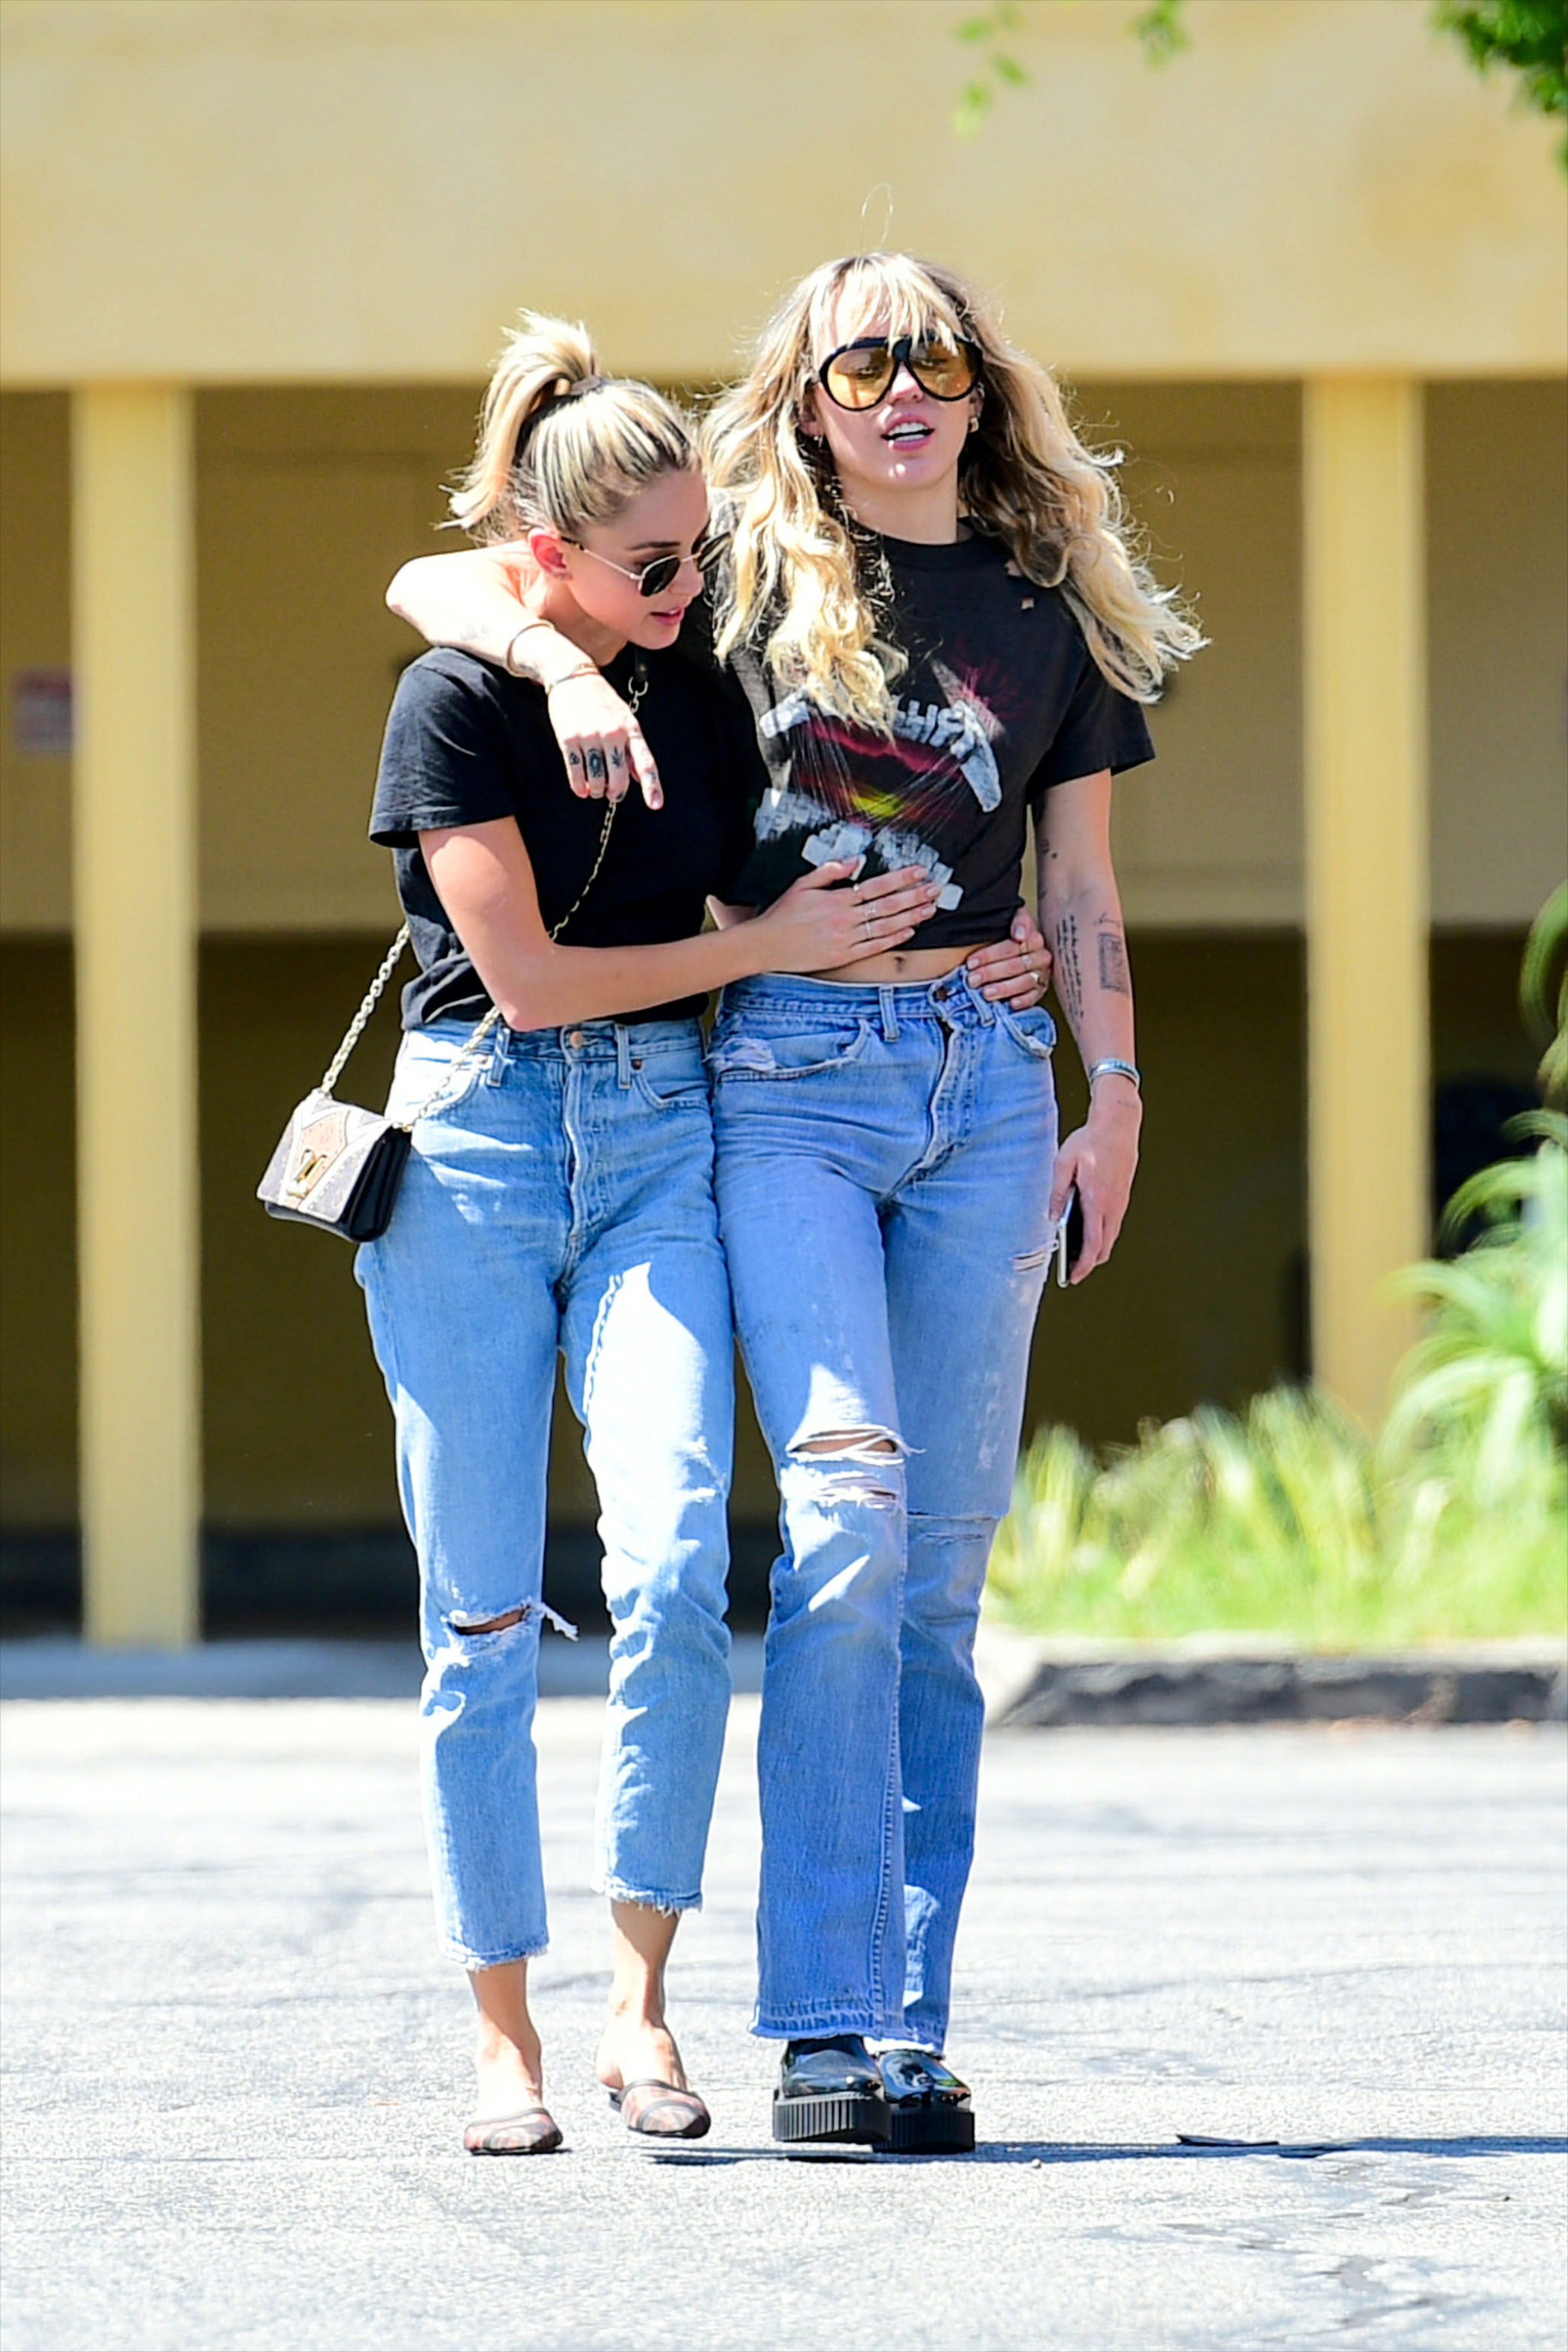 Miley Cyrus and Kaitlynn Carter Were Spotted 'Making Out' at Party in NYC-2